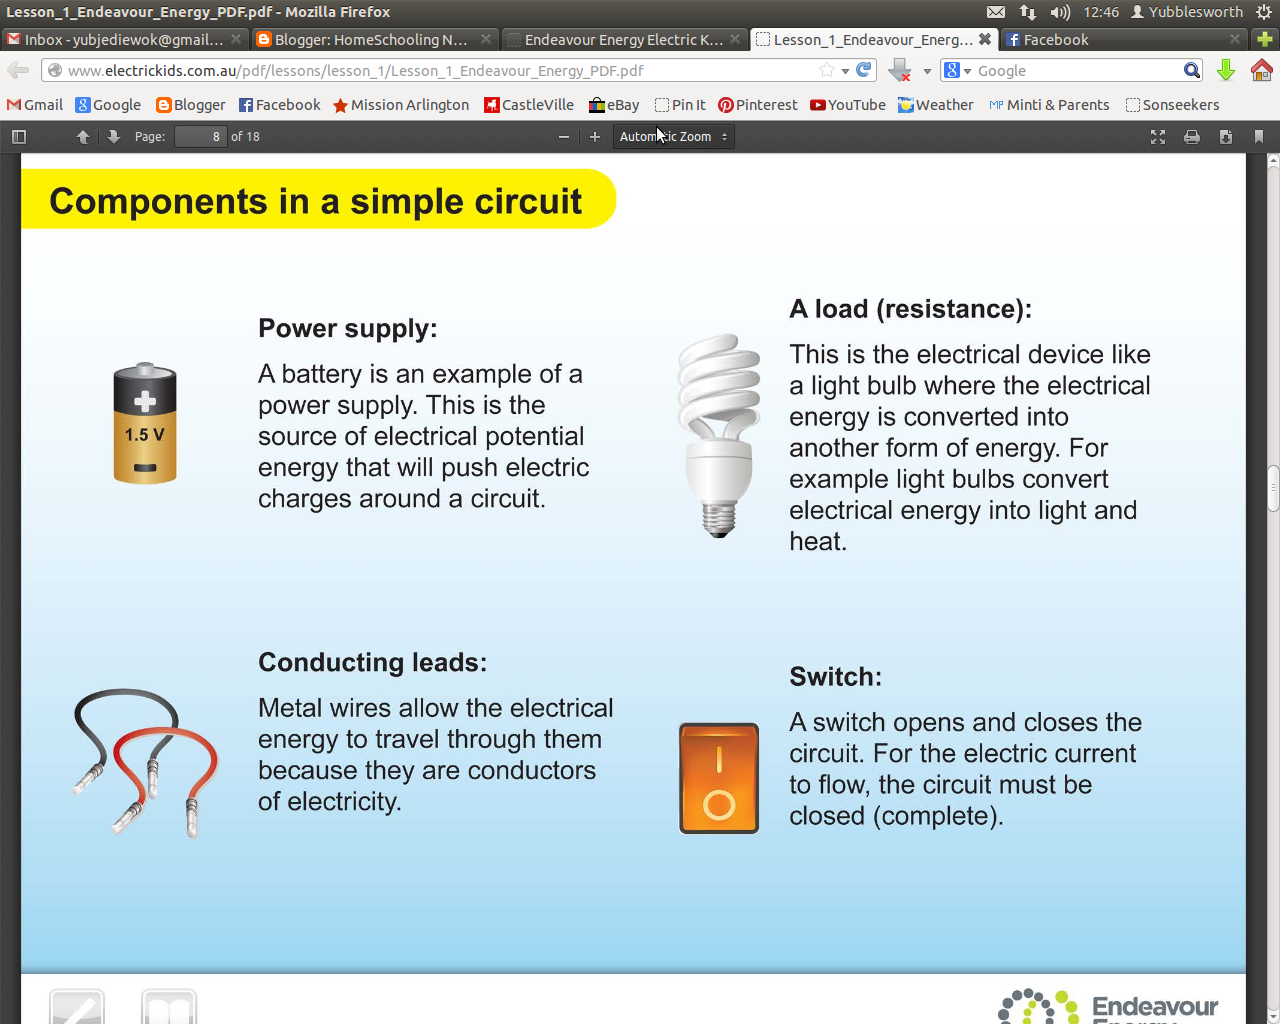 Homeschooling Notepages How To Make Electric Circuit And The Electrons Are Not Able Flow Around When Switch Is Turned On It Closes Gap Electricity Move